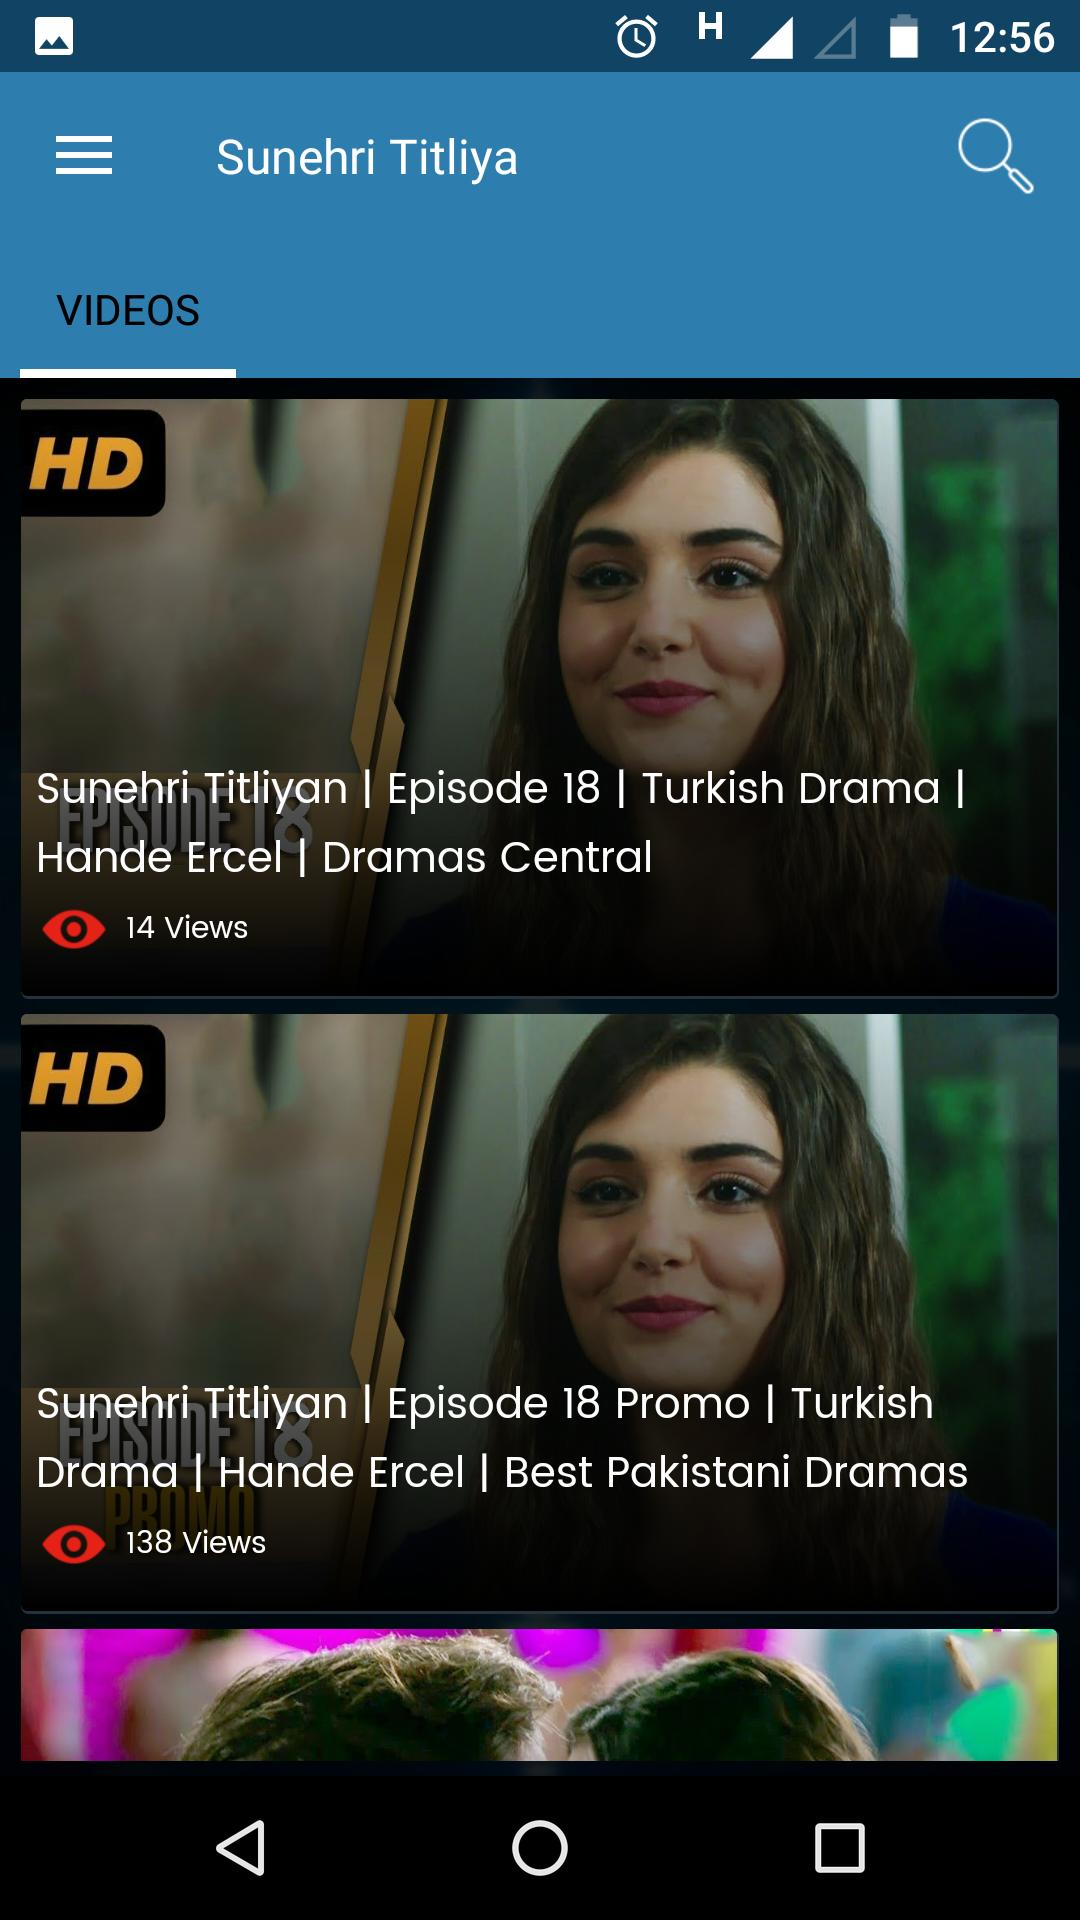 Sunehri Titliyan Turkish Drama in Hindi for Android - APK